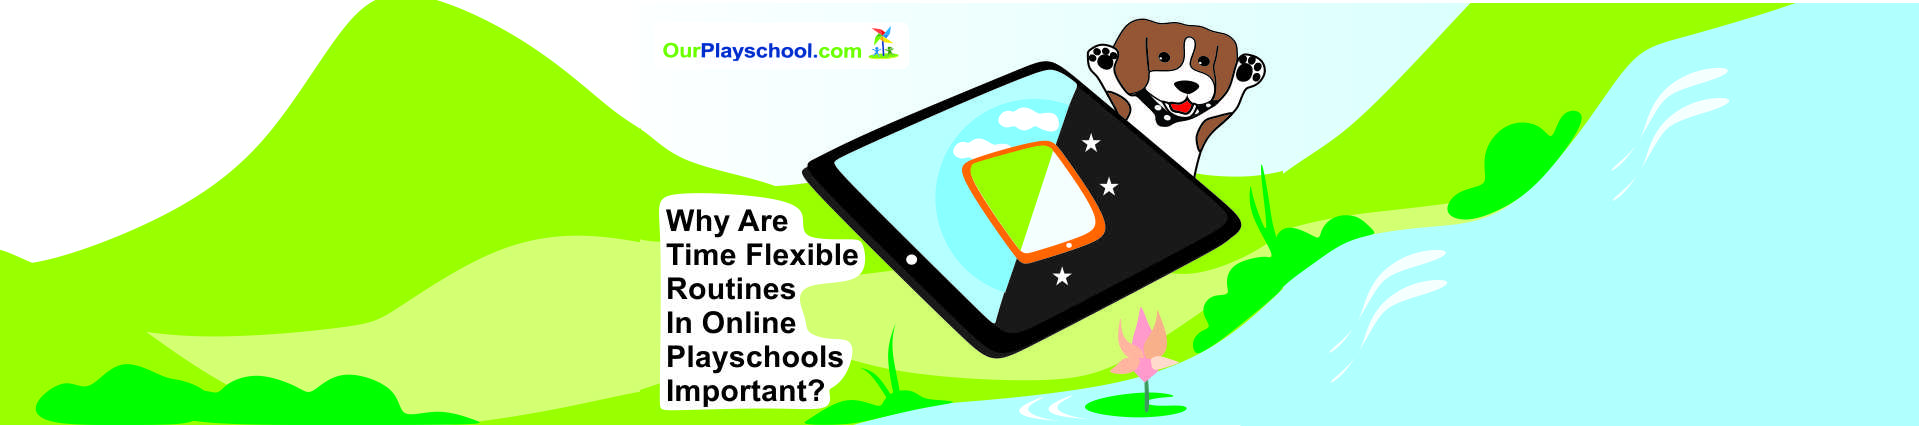 Know Time Flexible Routines in Online Play Schools Important